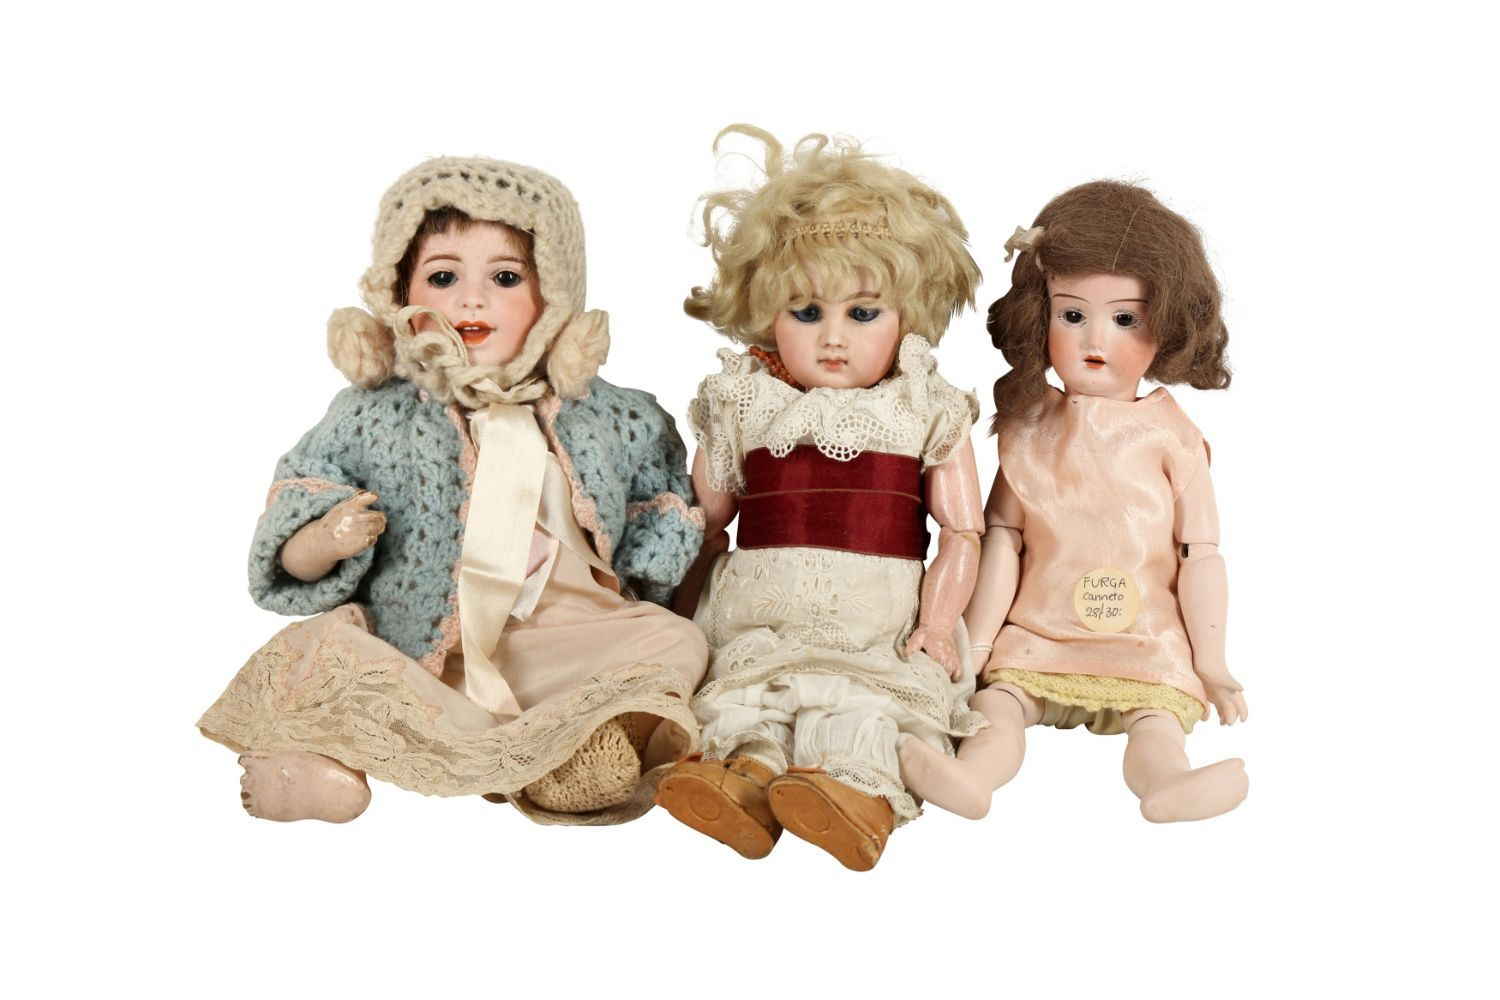 Interiors, Homes & Antiques including Toys, Dolls and Juvenalia